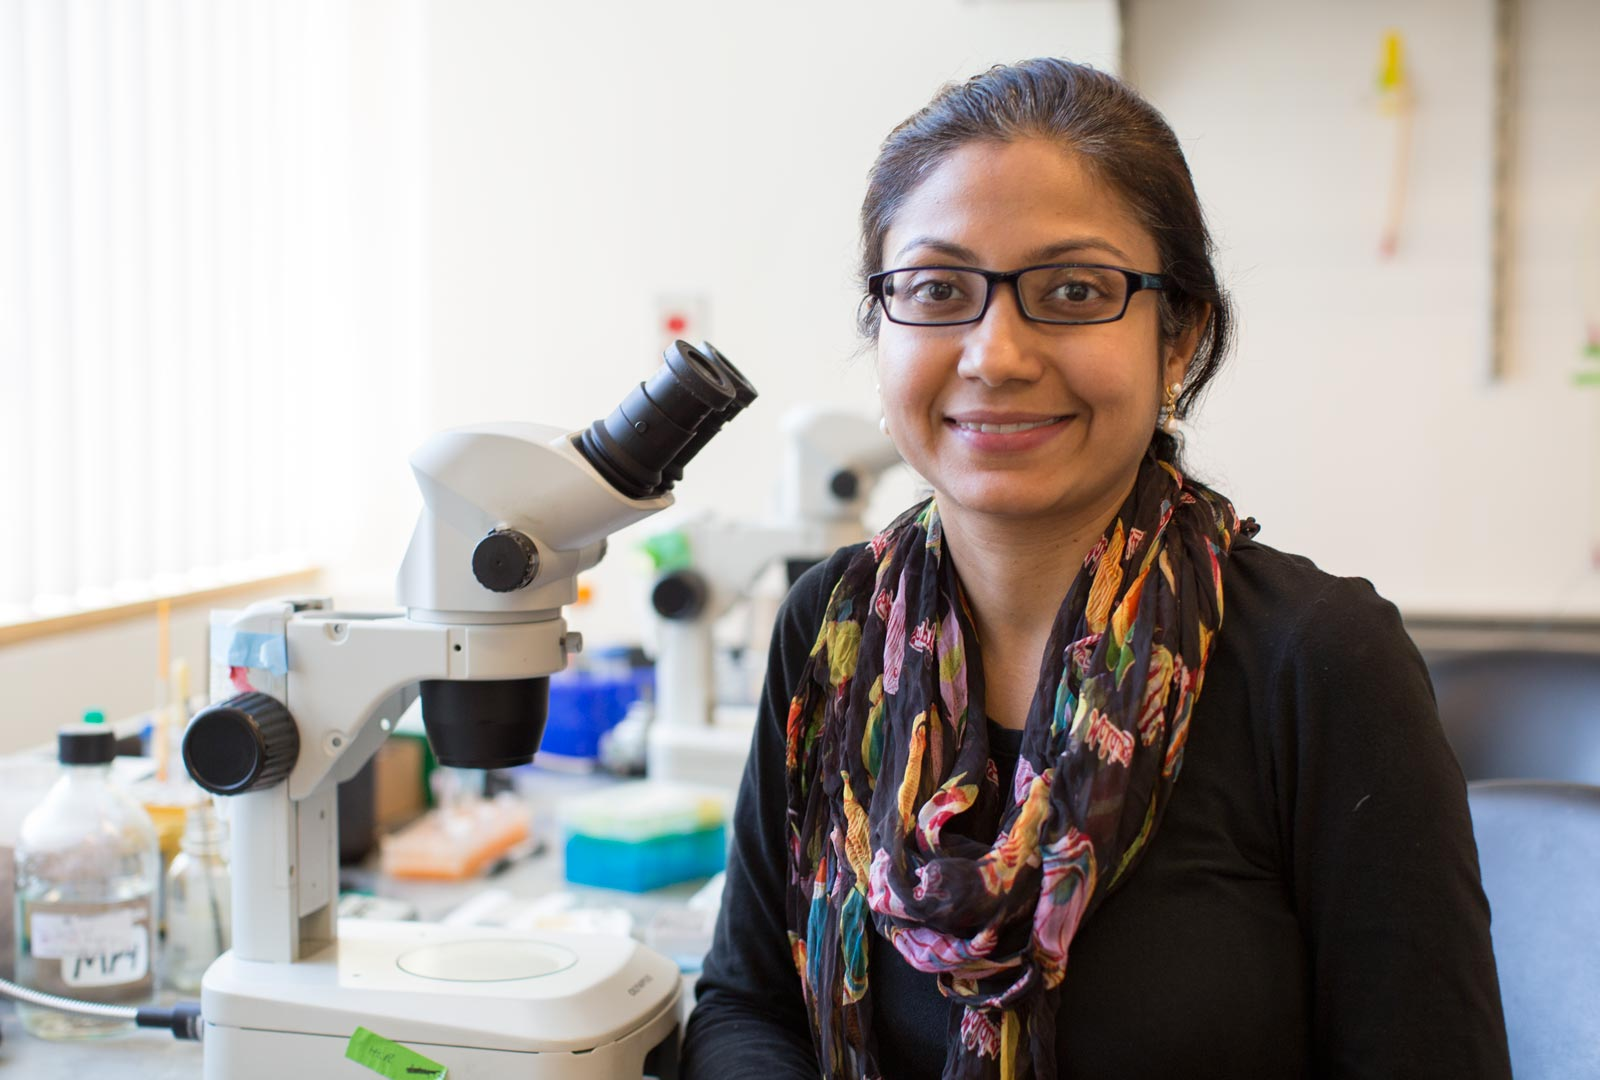 Postdoctoral fellow Debasmita Roy, PhD